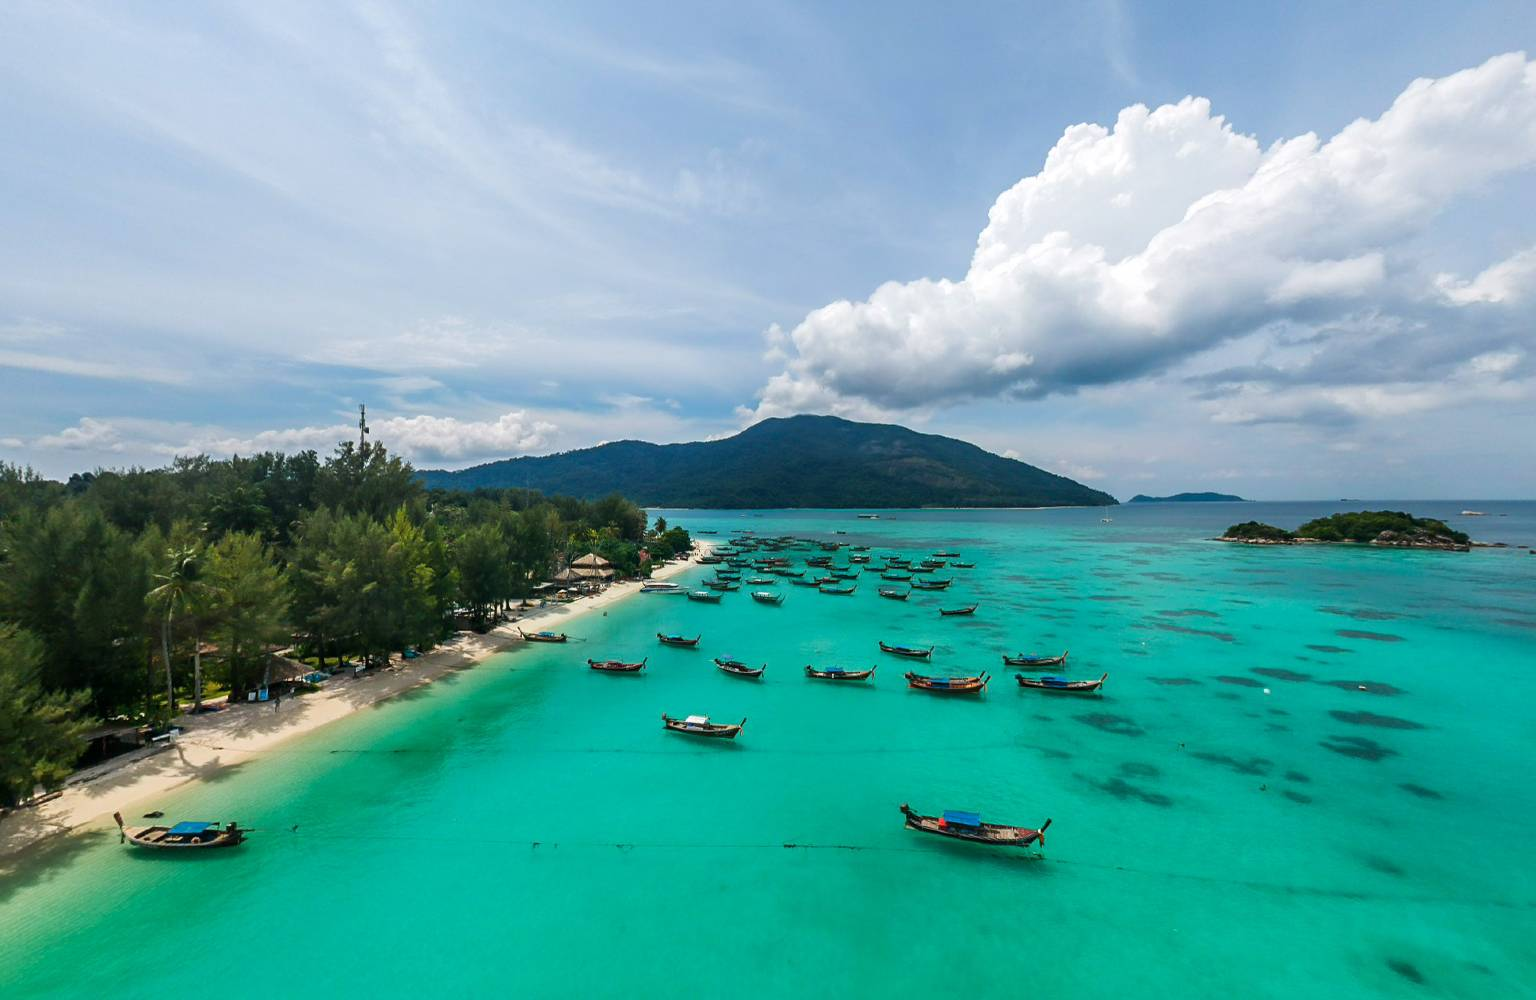 The coast of Koh Lipe with beautiful blue-green water and many longtail boats